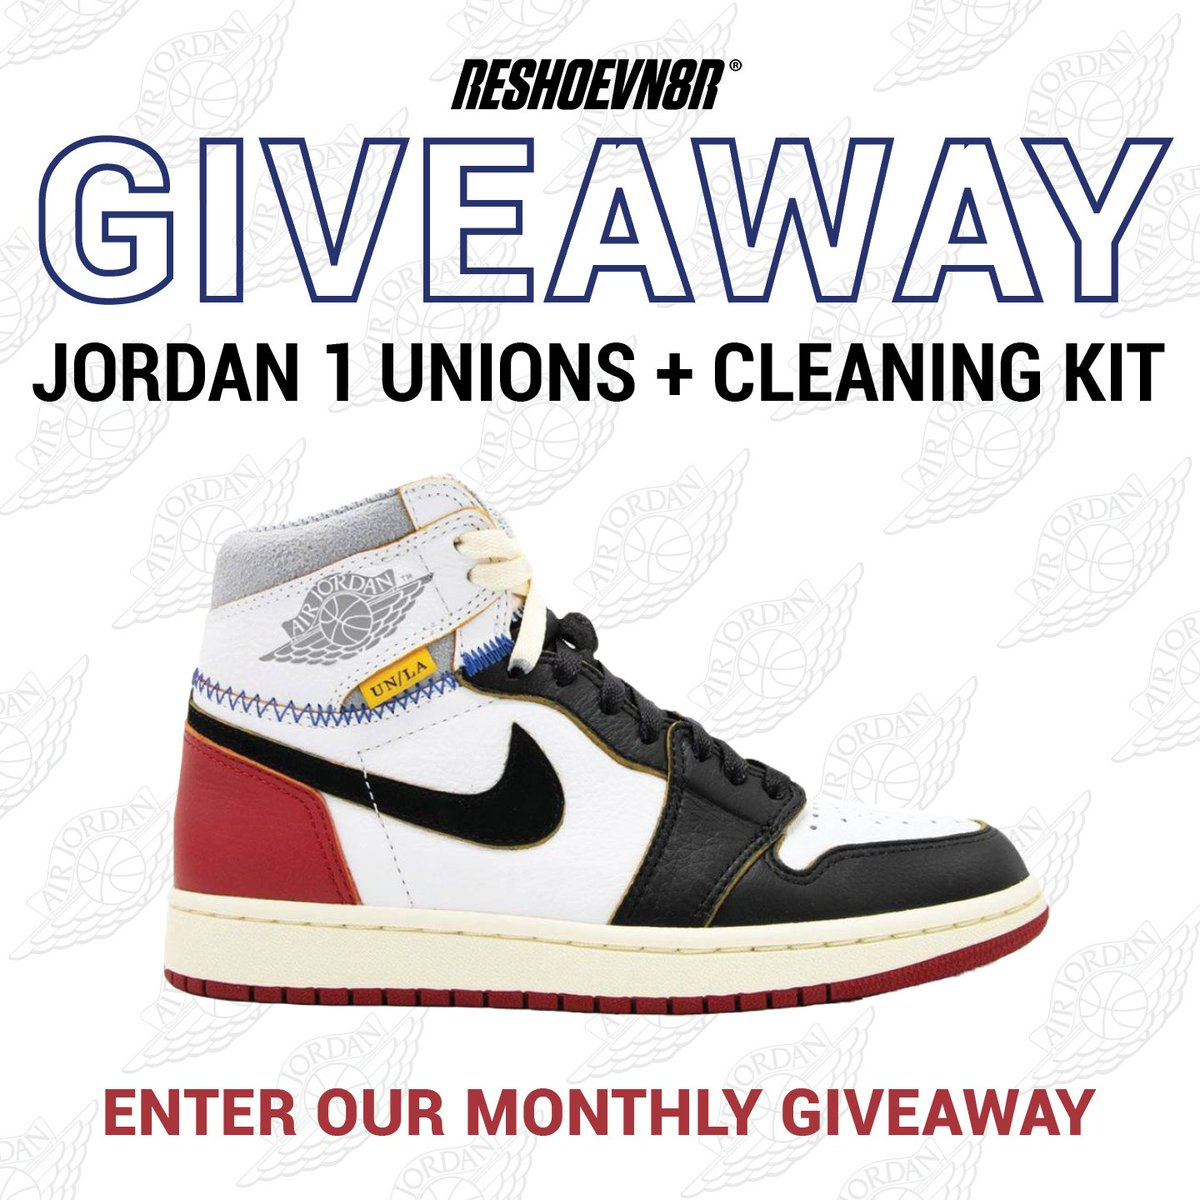 Happy 2019! We are giving away Unions! Retweet this photo for an extra entry into the giveaway and click here for more entry methods https://reshoevn8r.com/pages/giveaway